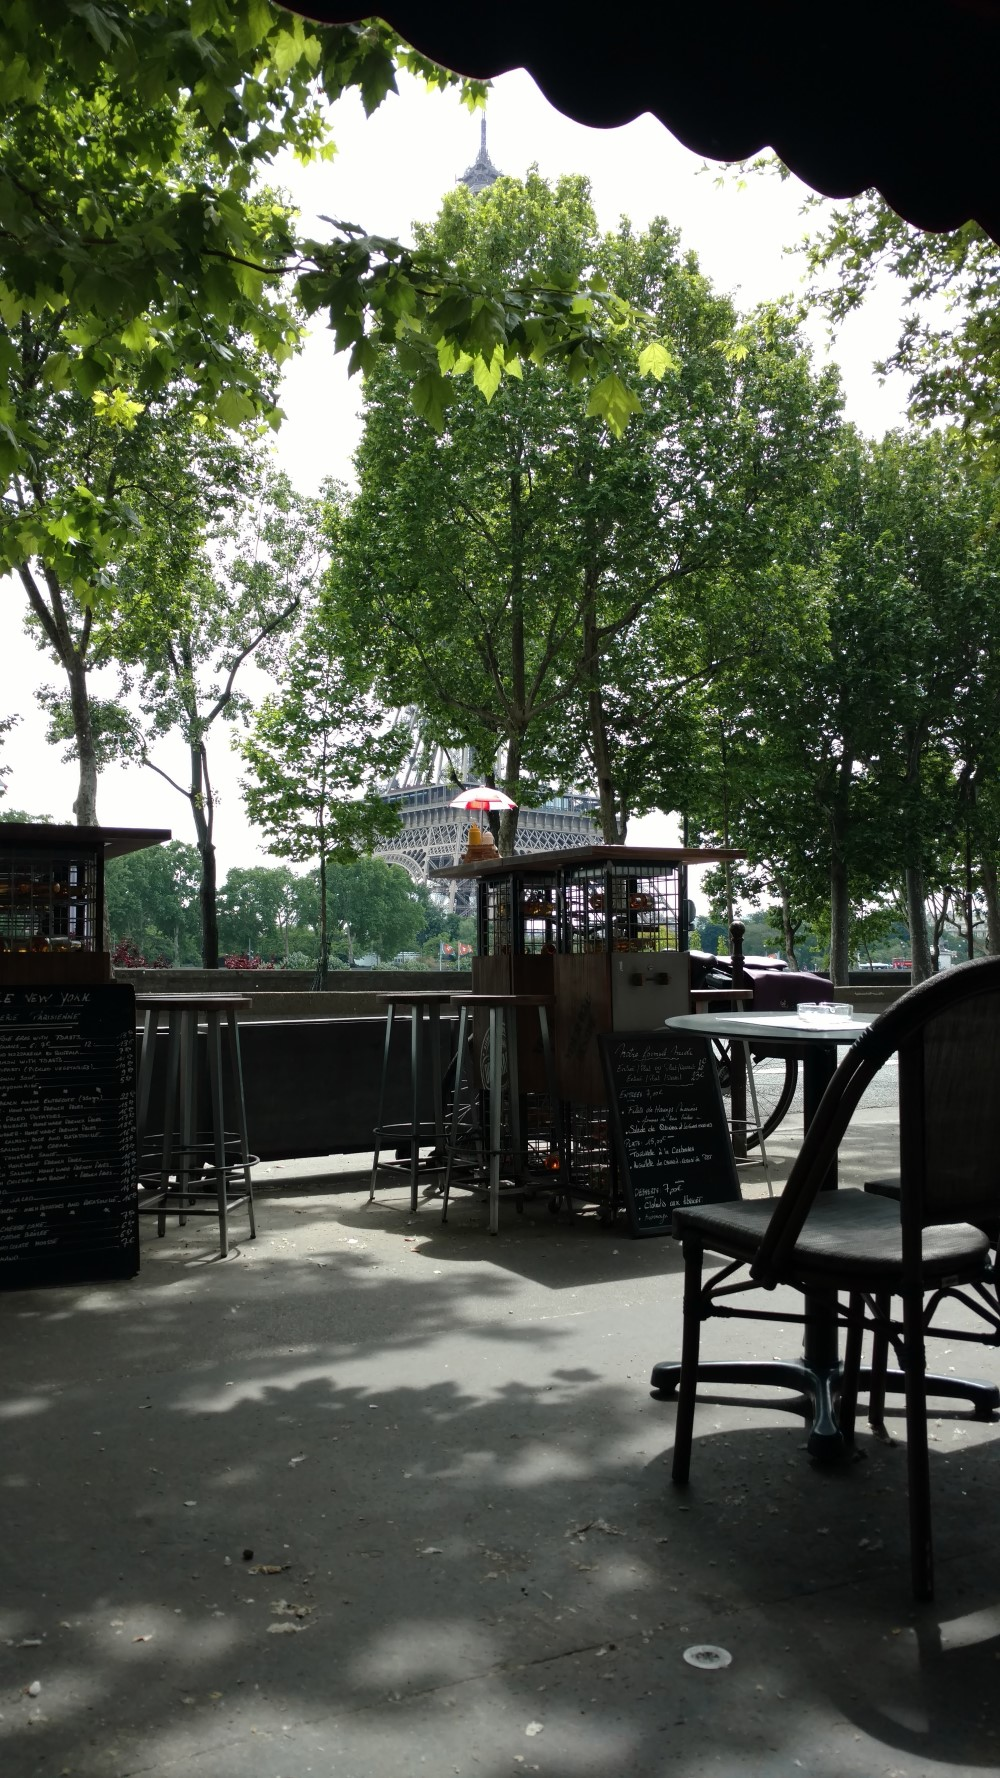 View from the New York Cafe in Paris of the Eiffel Tower, obstructed by a tree